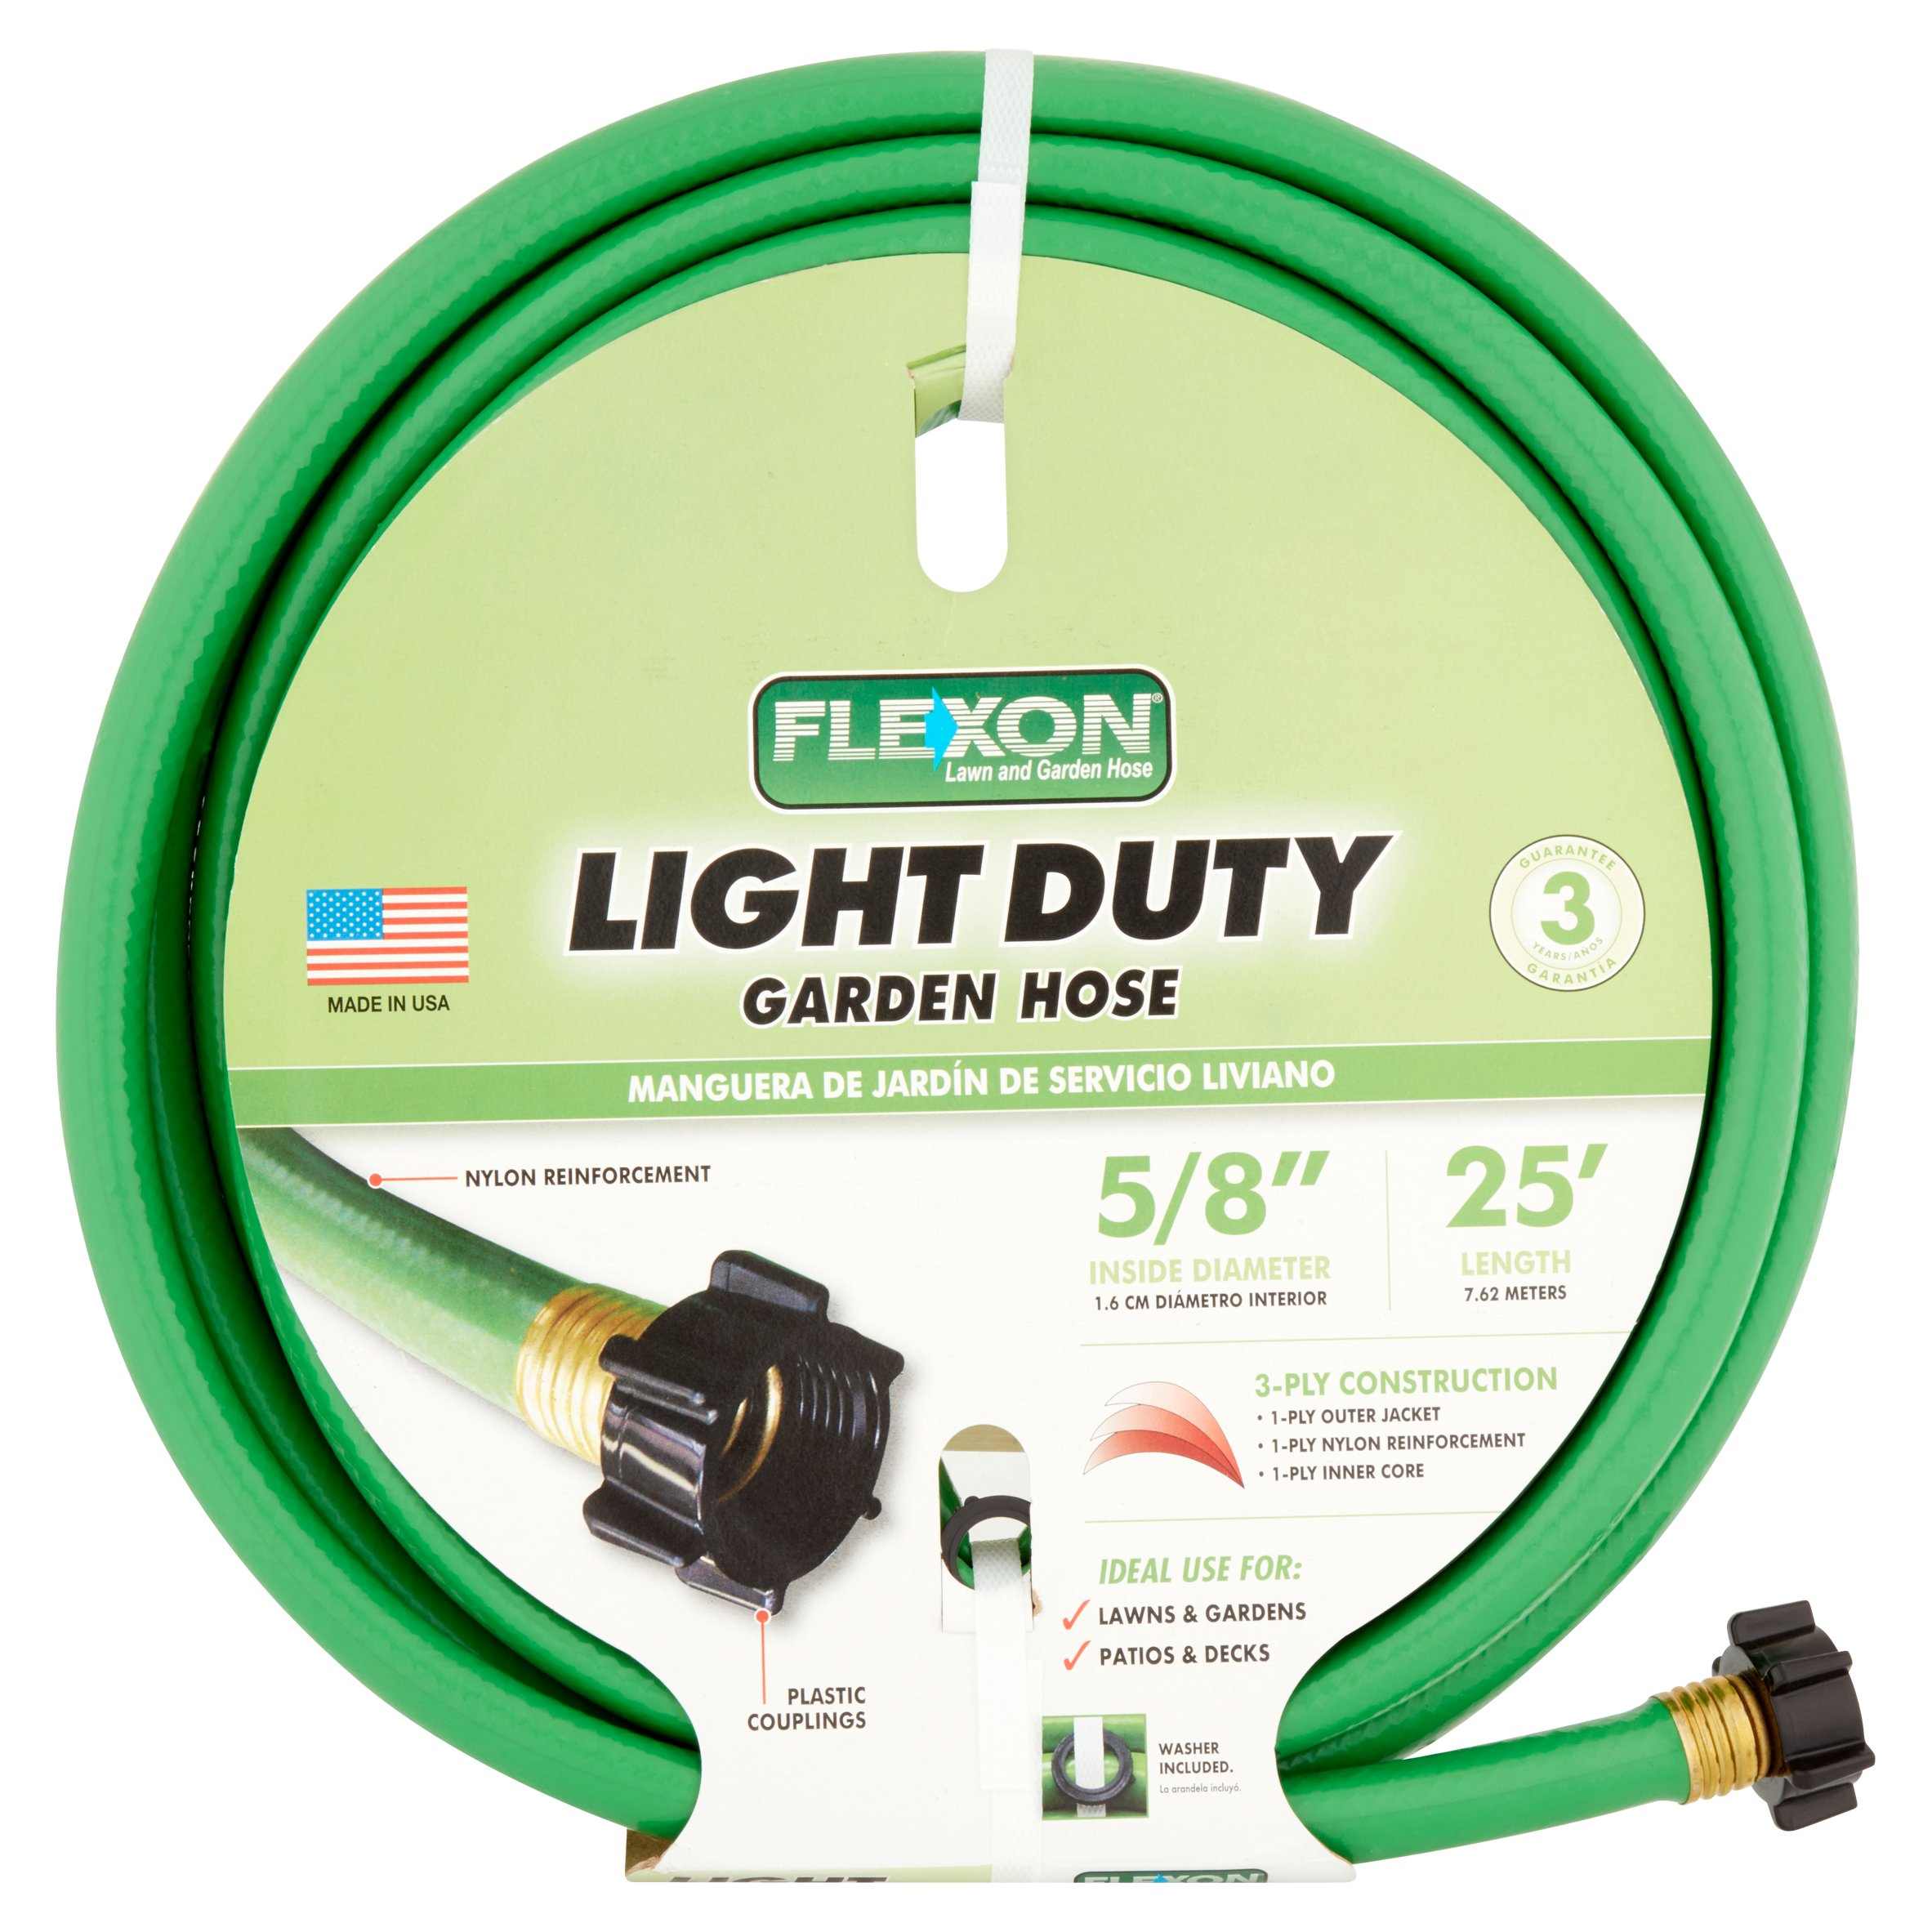 Flexon Light Duty Garden Hose